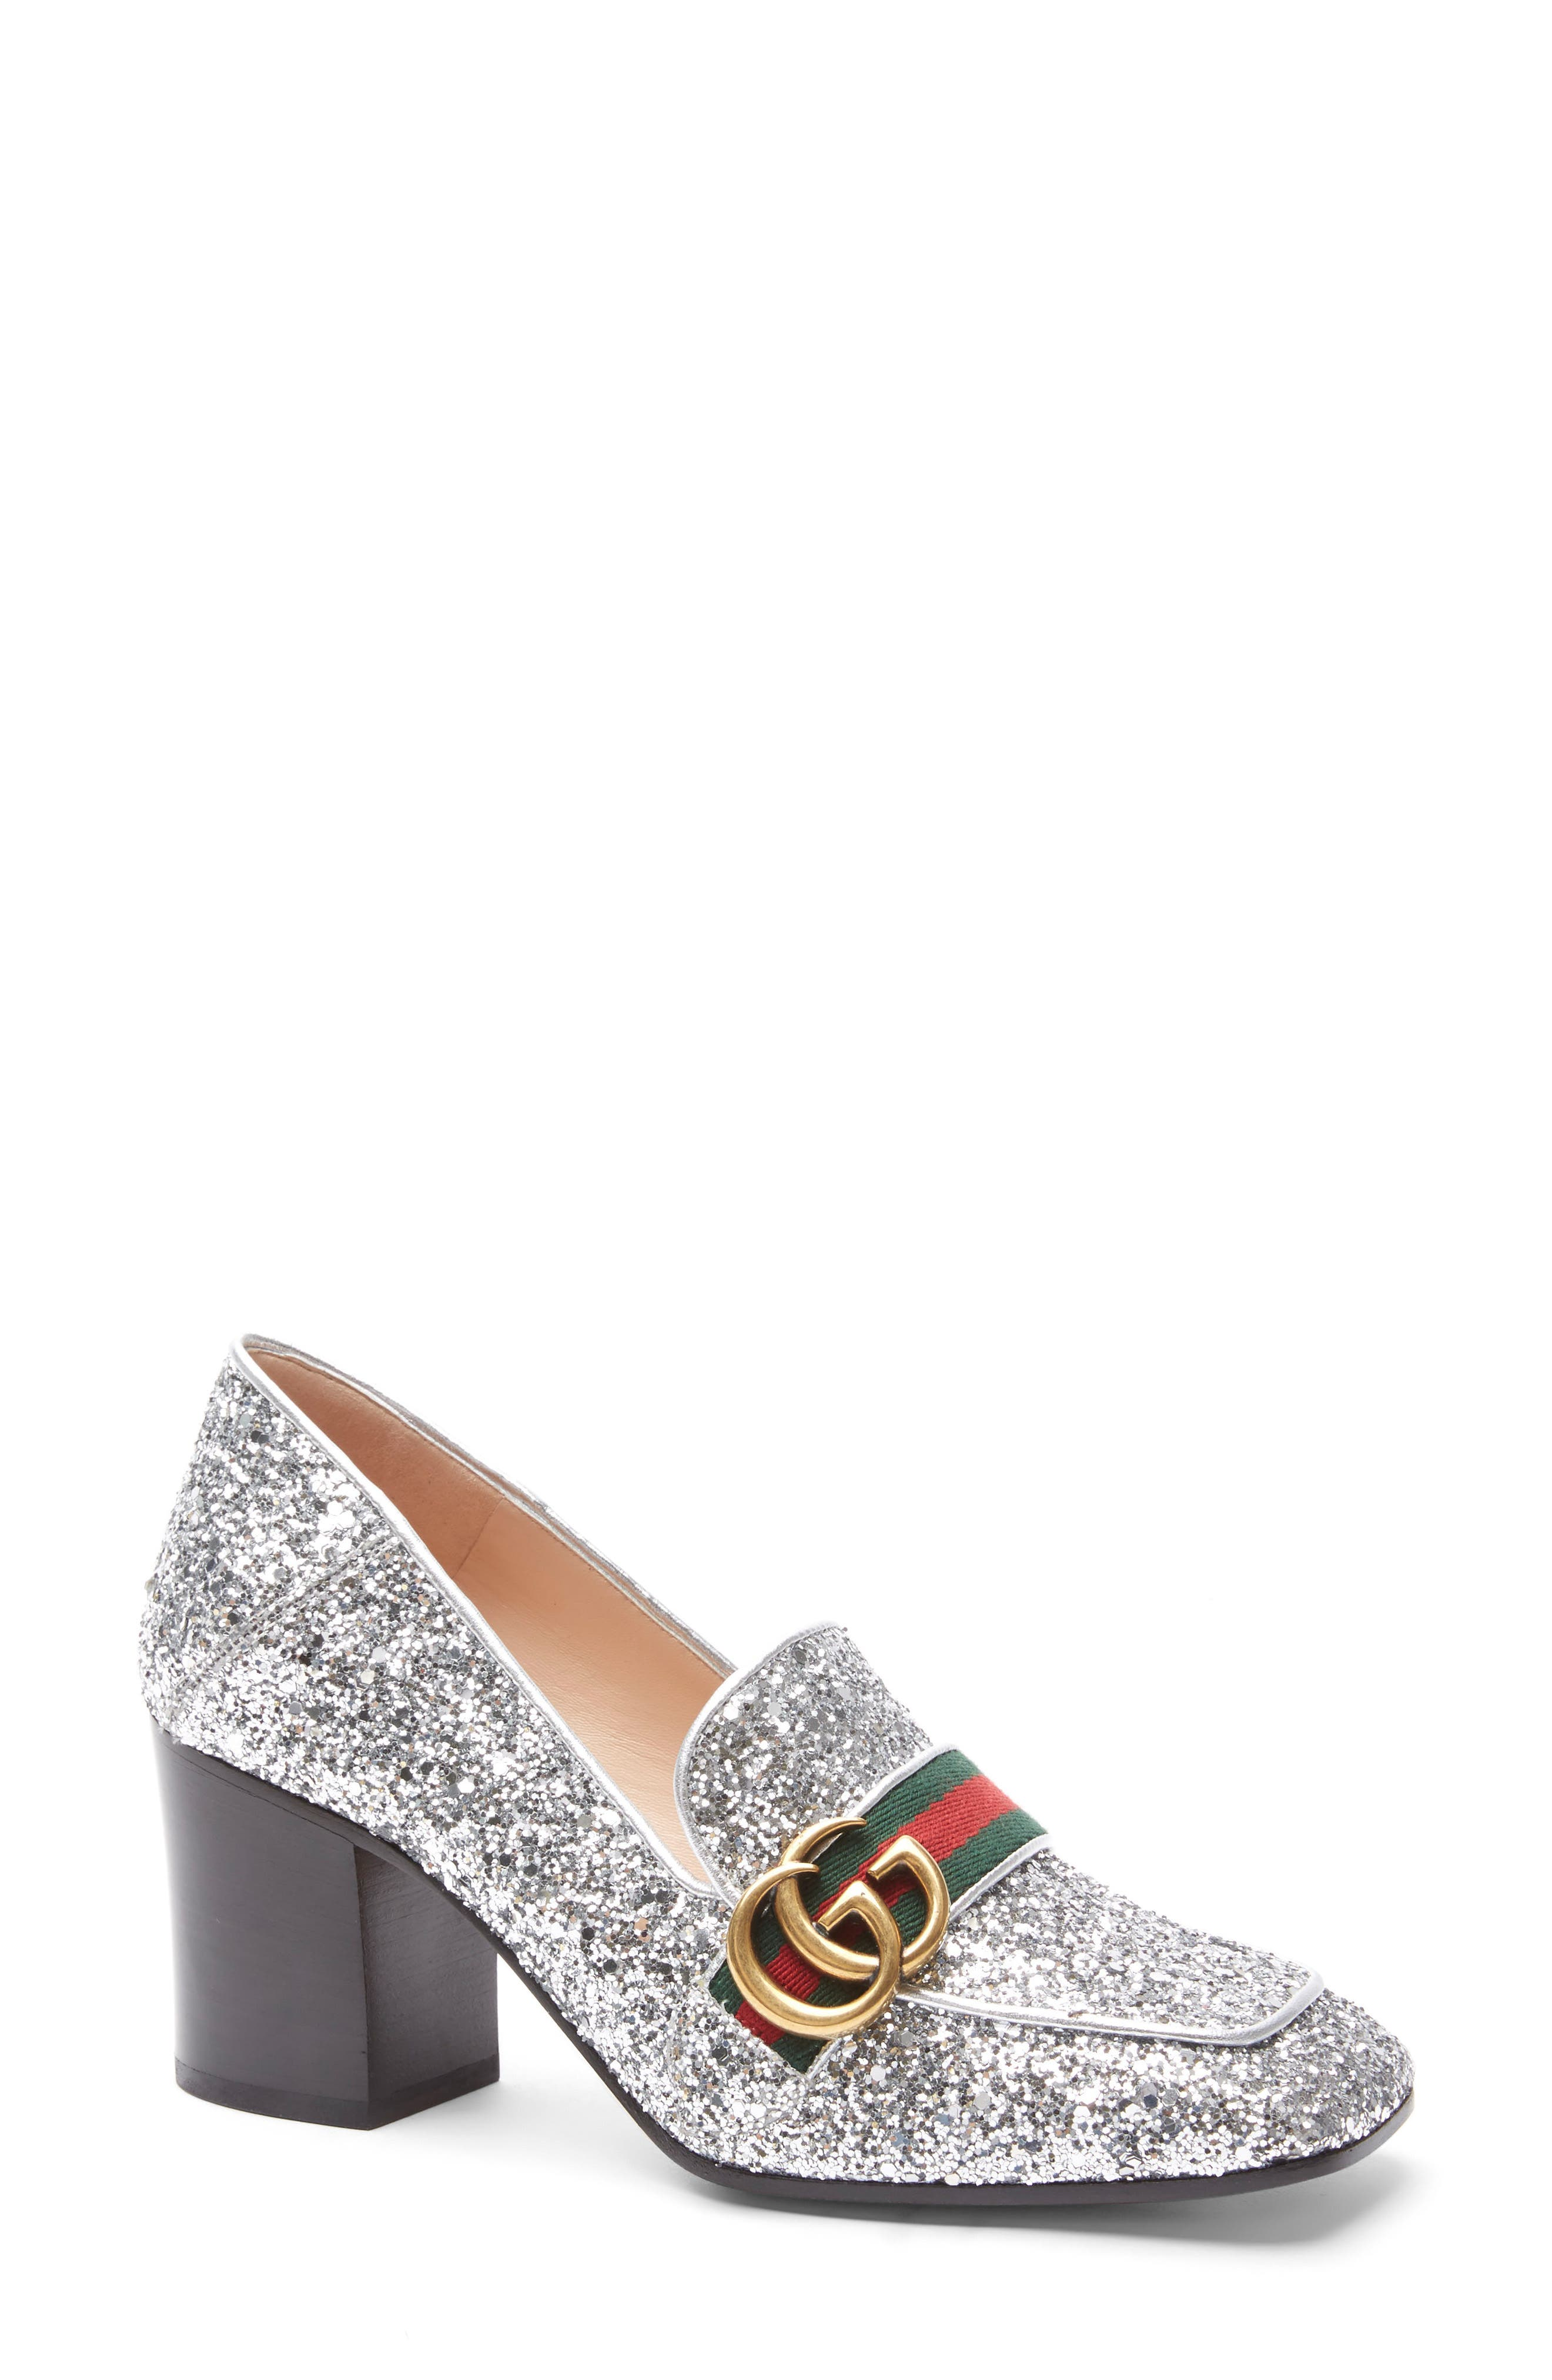 Glitter Peyton Loafer Pump,                         Main,                         color,